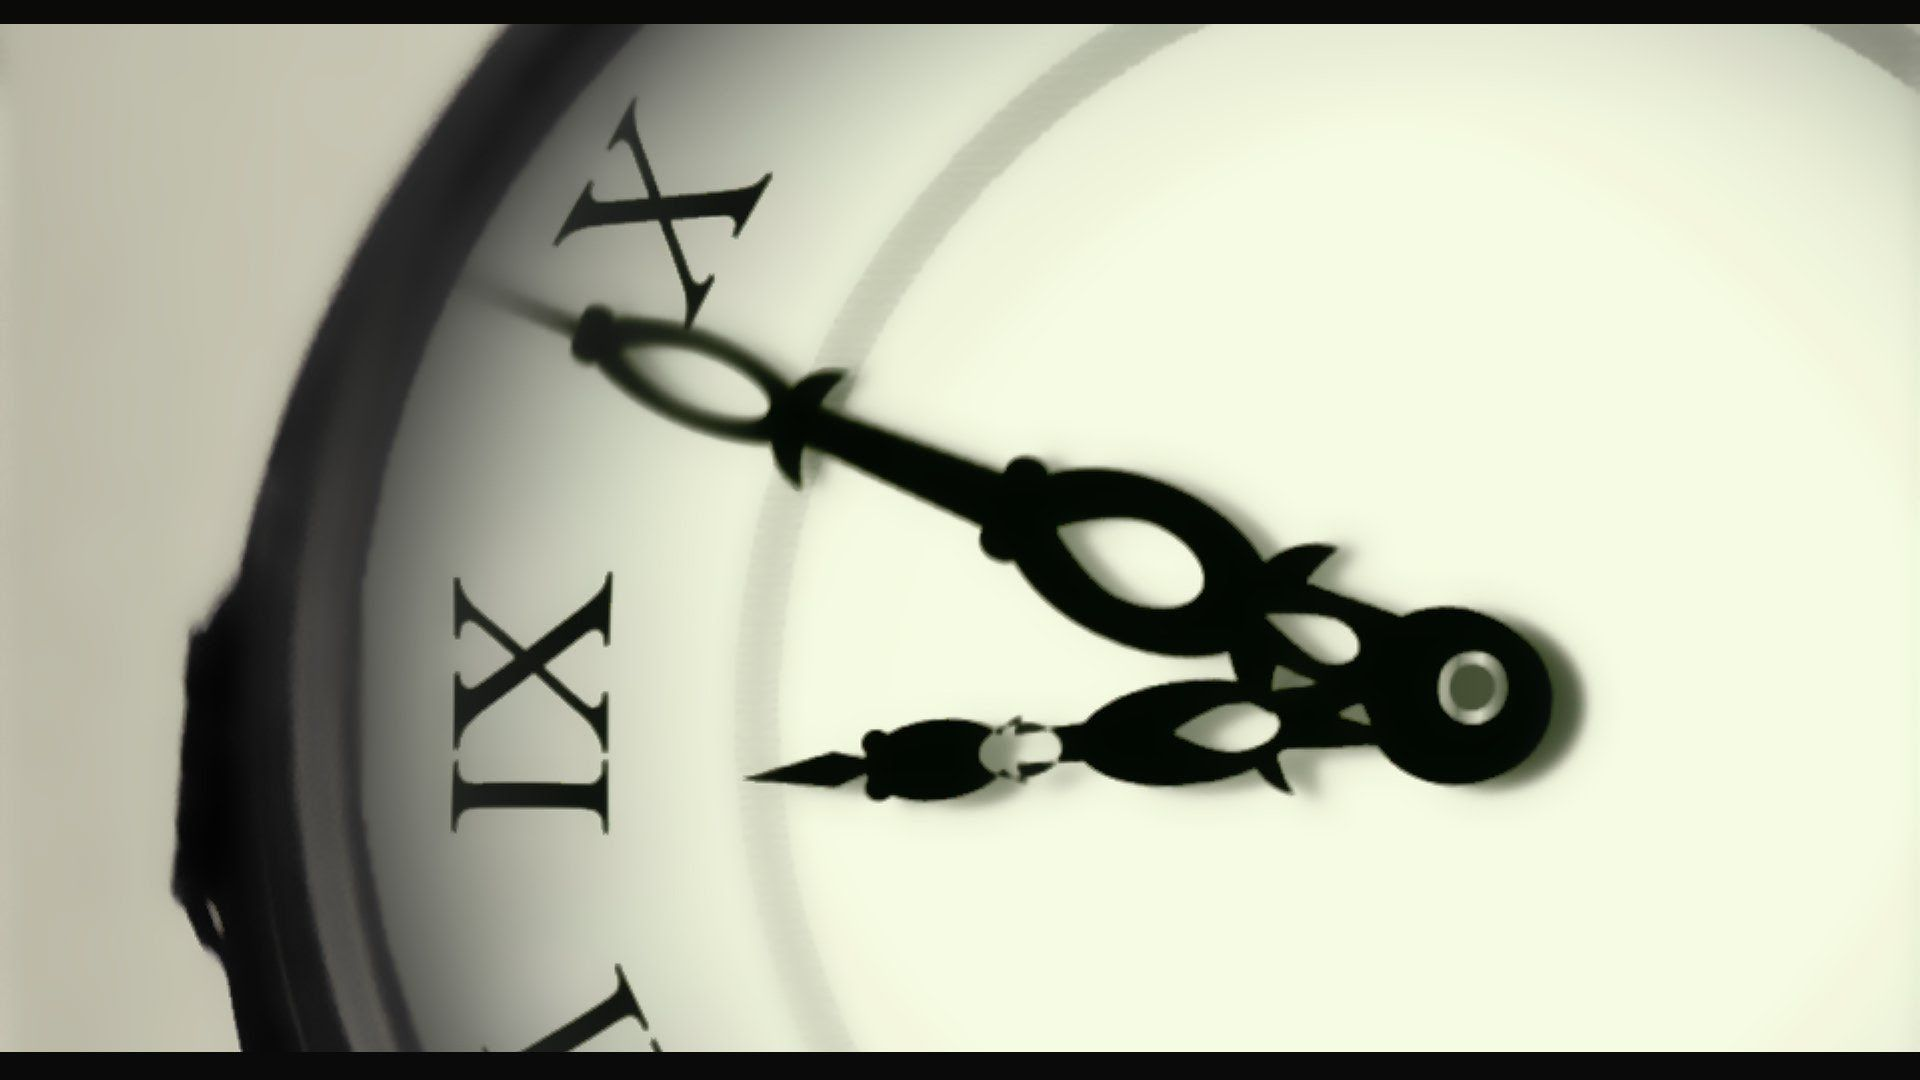 The COUNTDOWN Clock 24 hours Timer ticking clock with